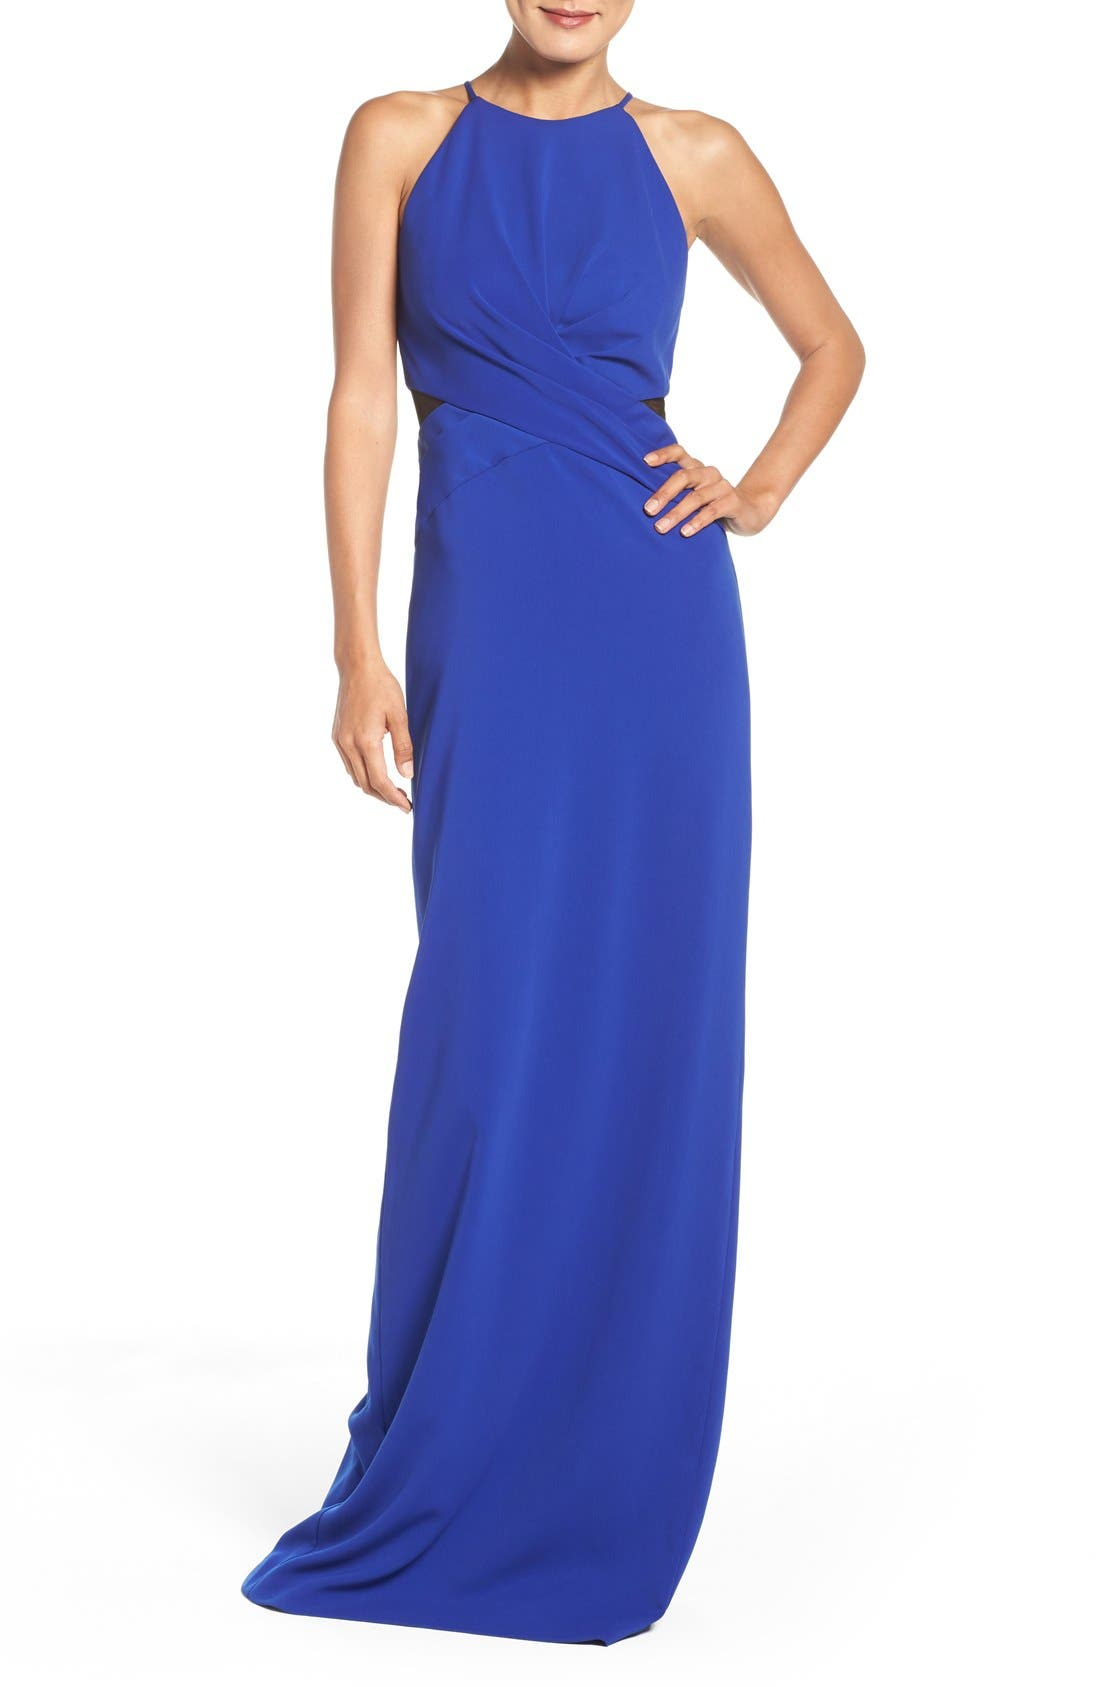 Alternate Image 1 Selected - Badgley Mischka Mesh Inset Gown